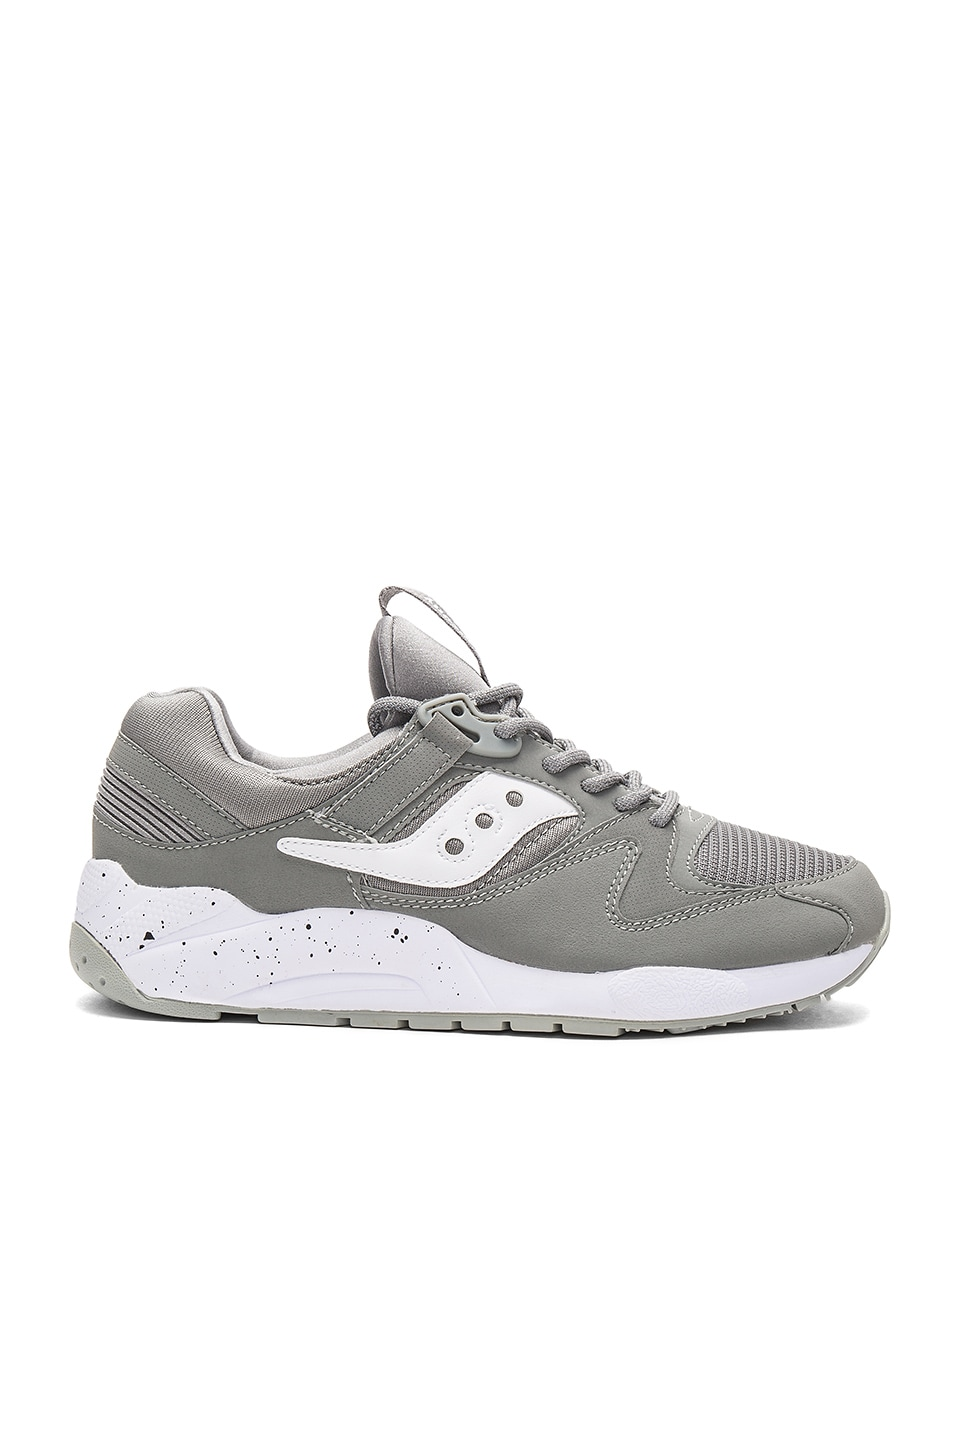 Grid 9000 by Saucony